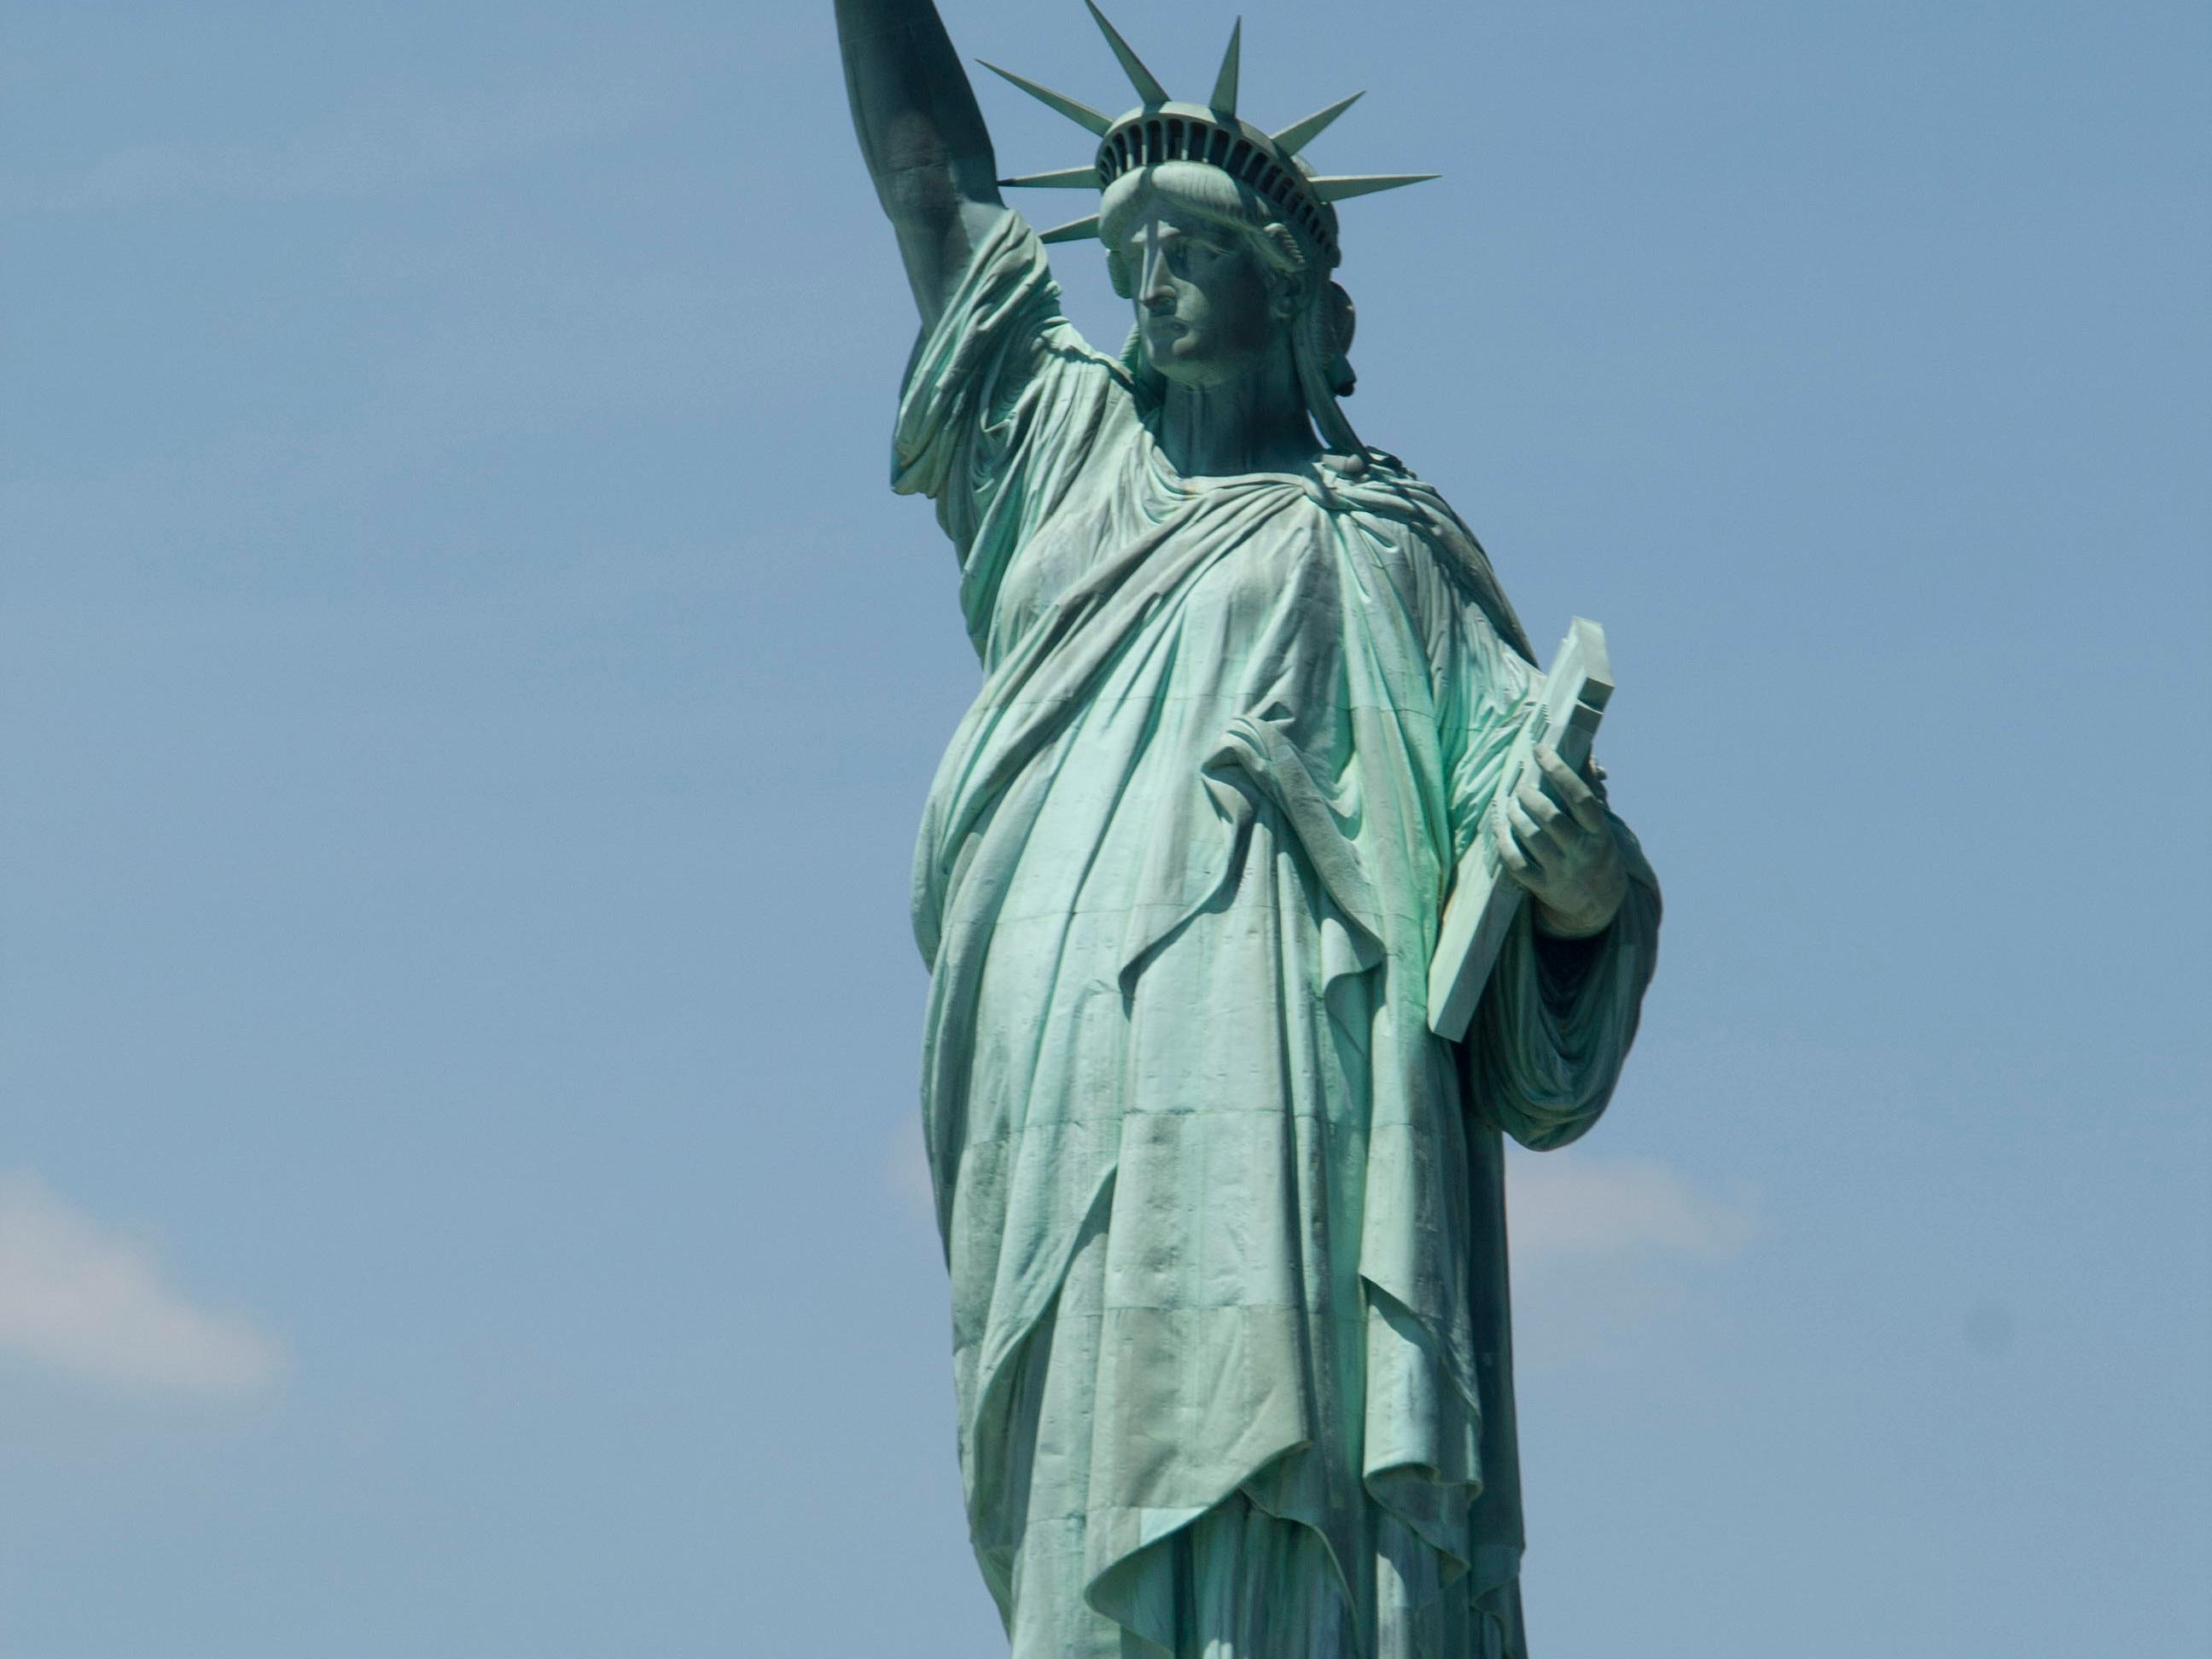 Statue Of Liberty Boat Tours Amp Vacation Packages From New York Boston Washington Dc Toronto Montreal